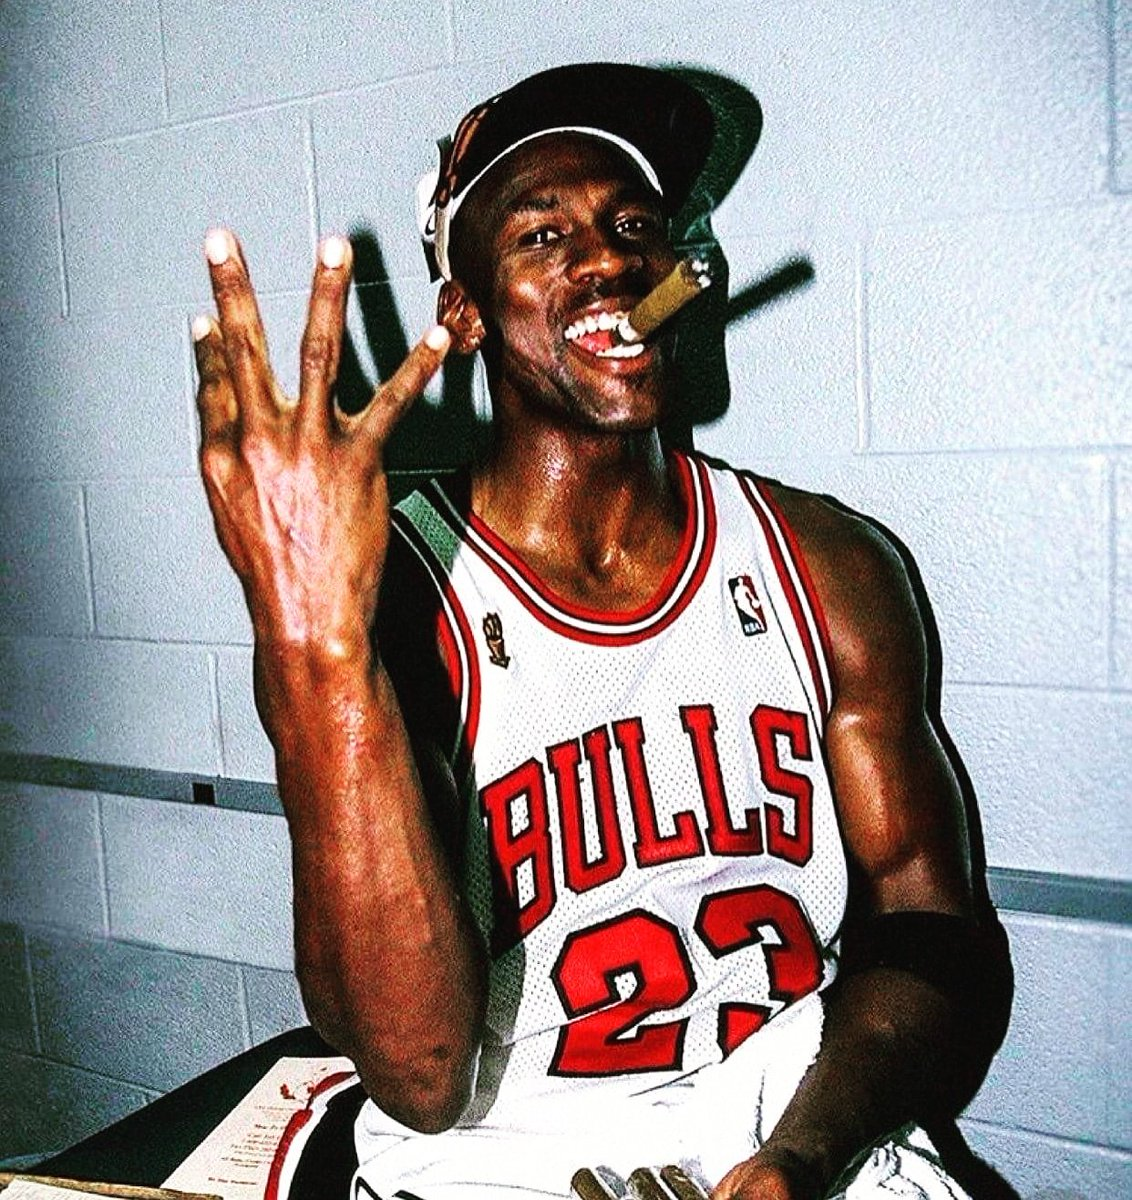 """MrCigarEnthusiast on Twitter: """"The G.O.A.T. savoring that victory with a  stogie. 💨👌 #cigar #cigars #cigaraficionado #cigaraddict #cigarsmoker  #cigarlife #MichaelJordan #mj23 #thegoat https://t.co/cslQ1pLpsO"""" / Twitter"""